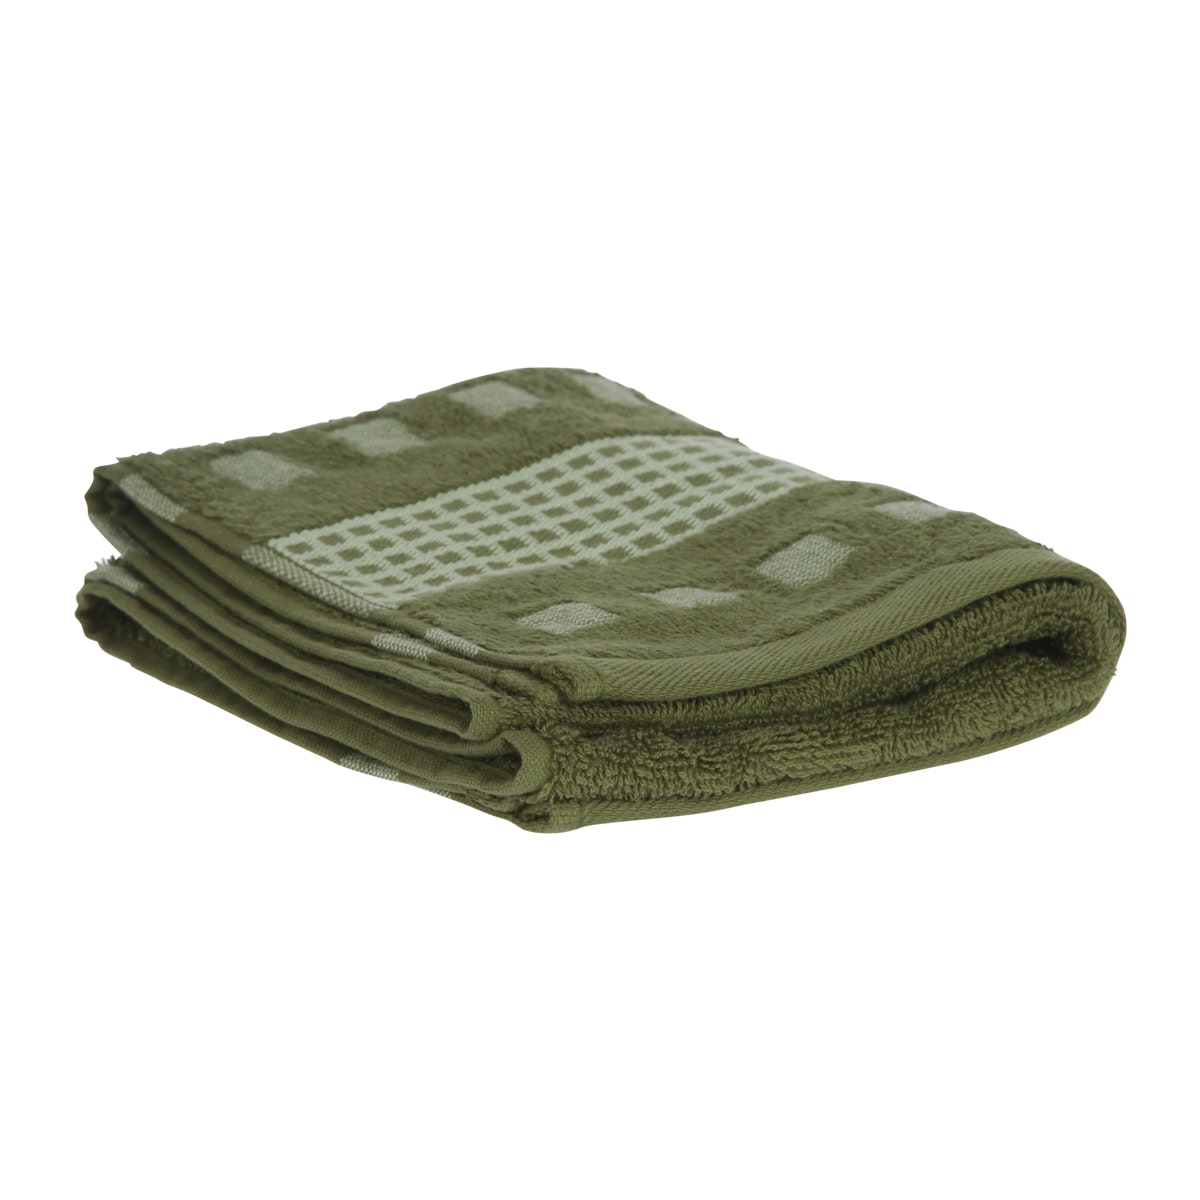 JYSK Towel Kronborg Gold 80X34 Green